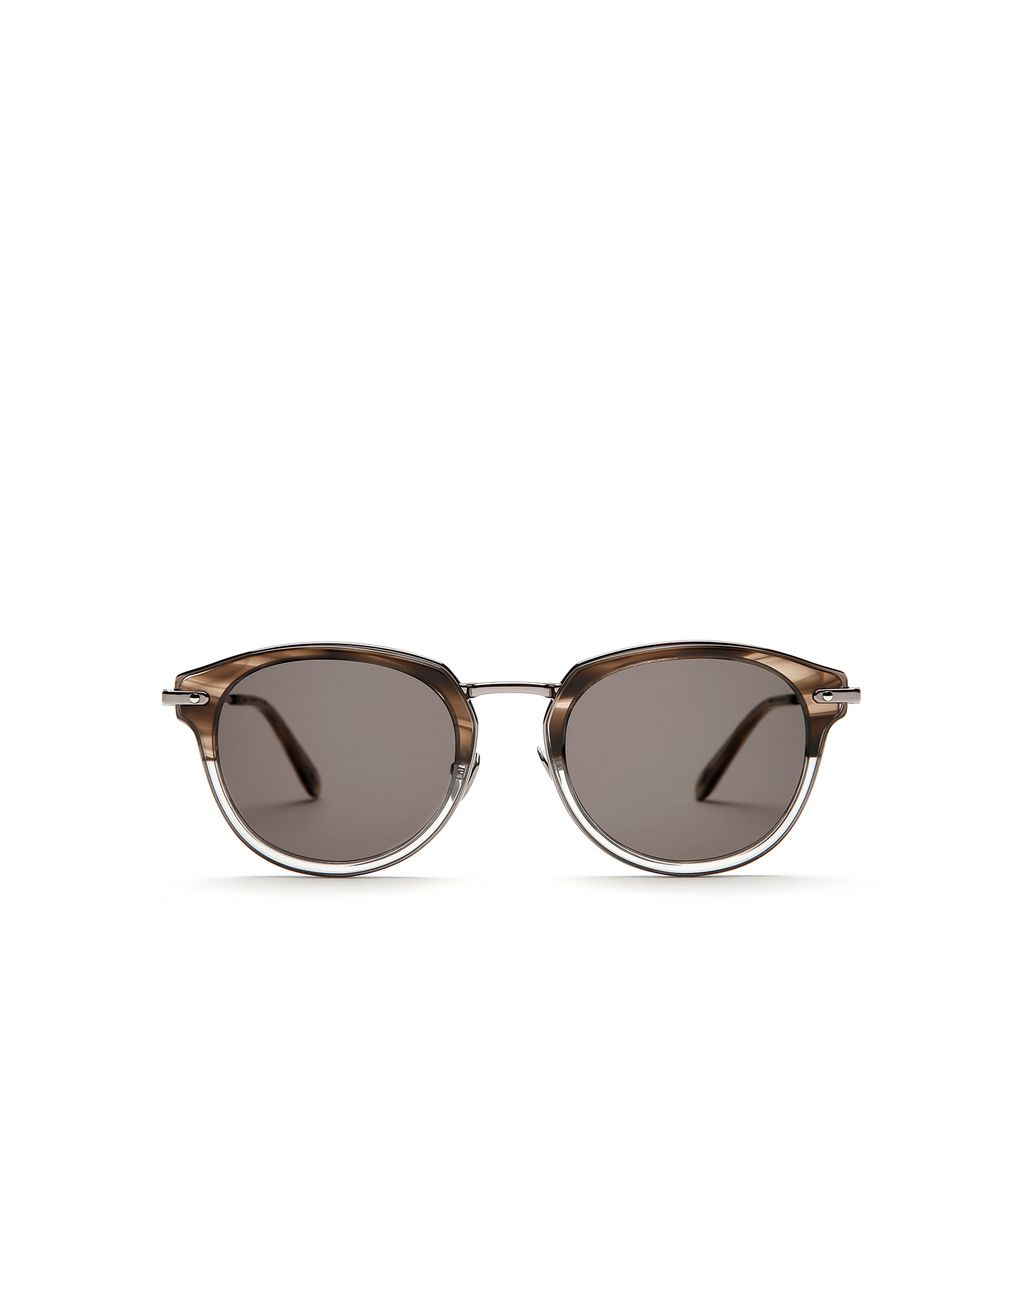 BRIONI Grey and Brown Sunglasses with Grey Lenses  Sunglasses [*** pickupInStoreShippingNotGuaranteed_info ***] f